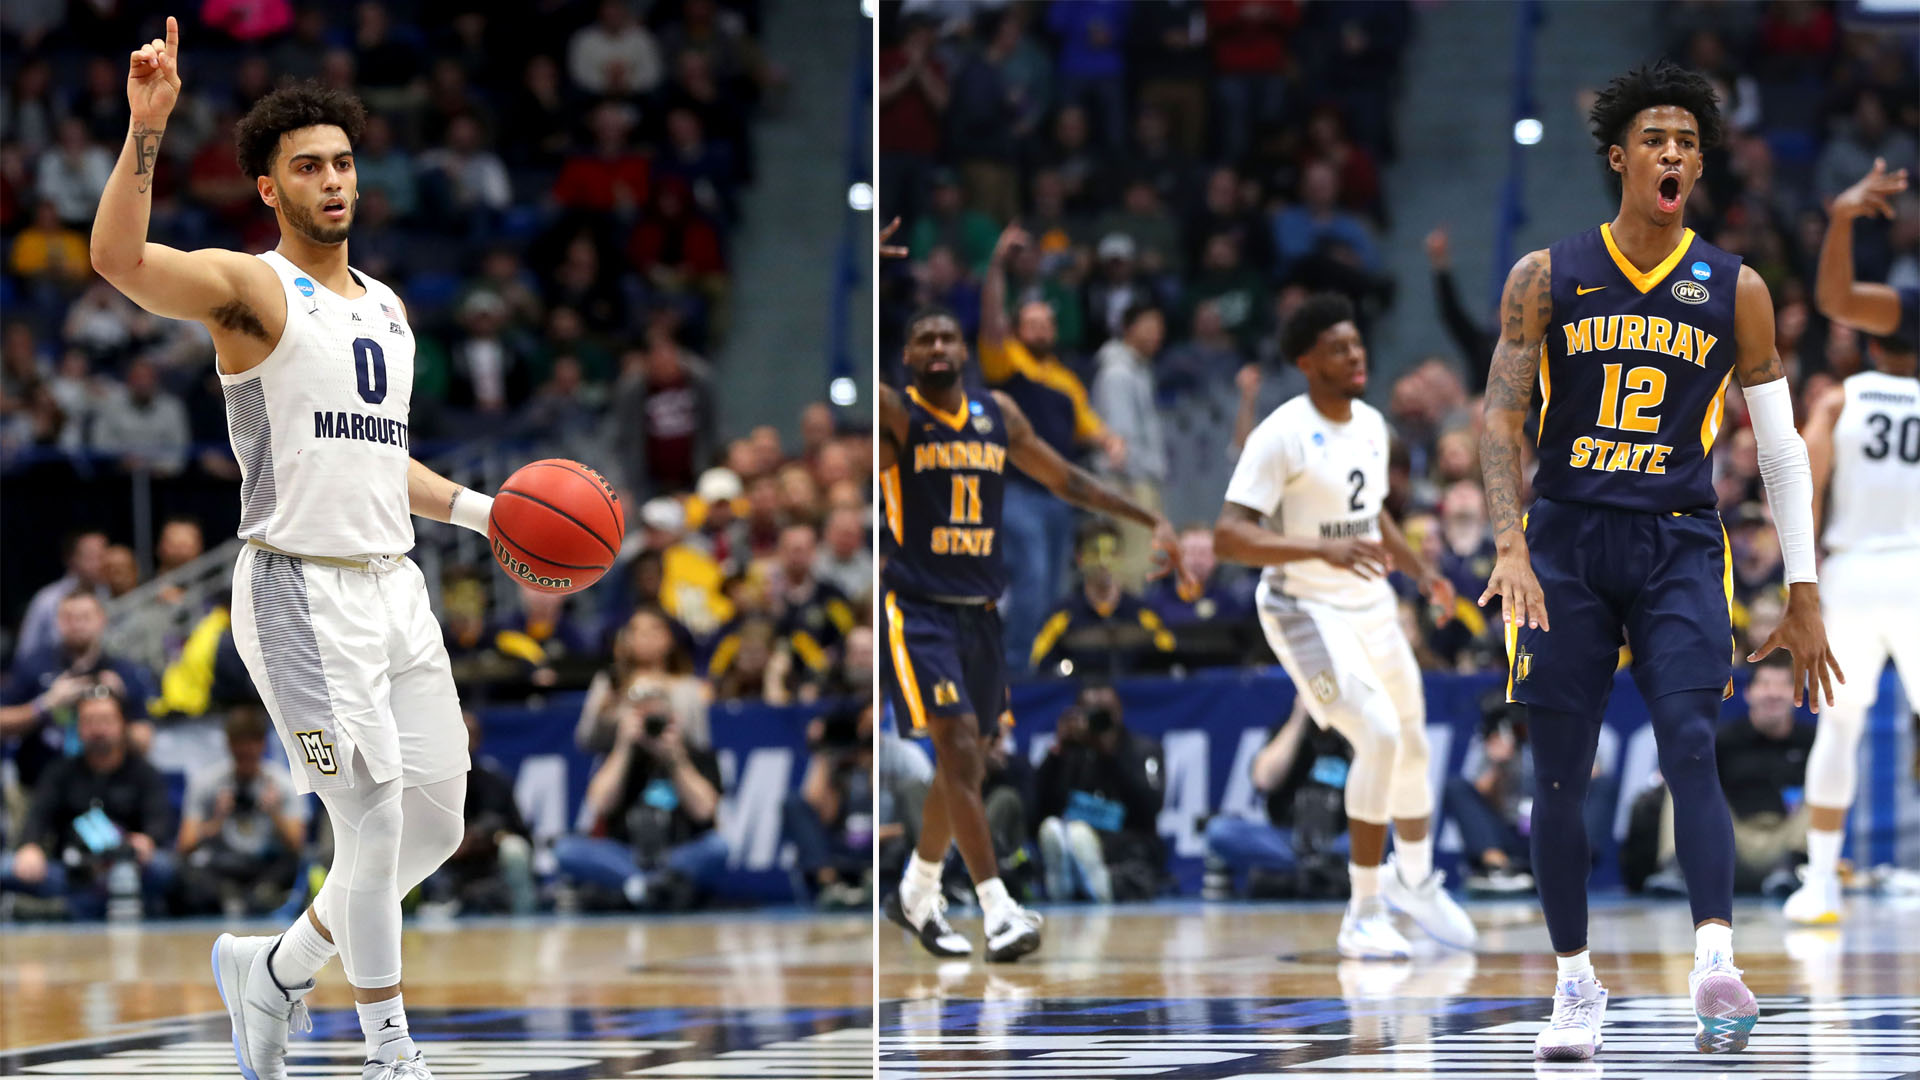 March Madness 2019: 3 Takeaways From Morant Vs. Howard